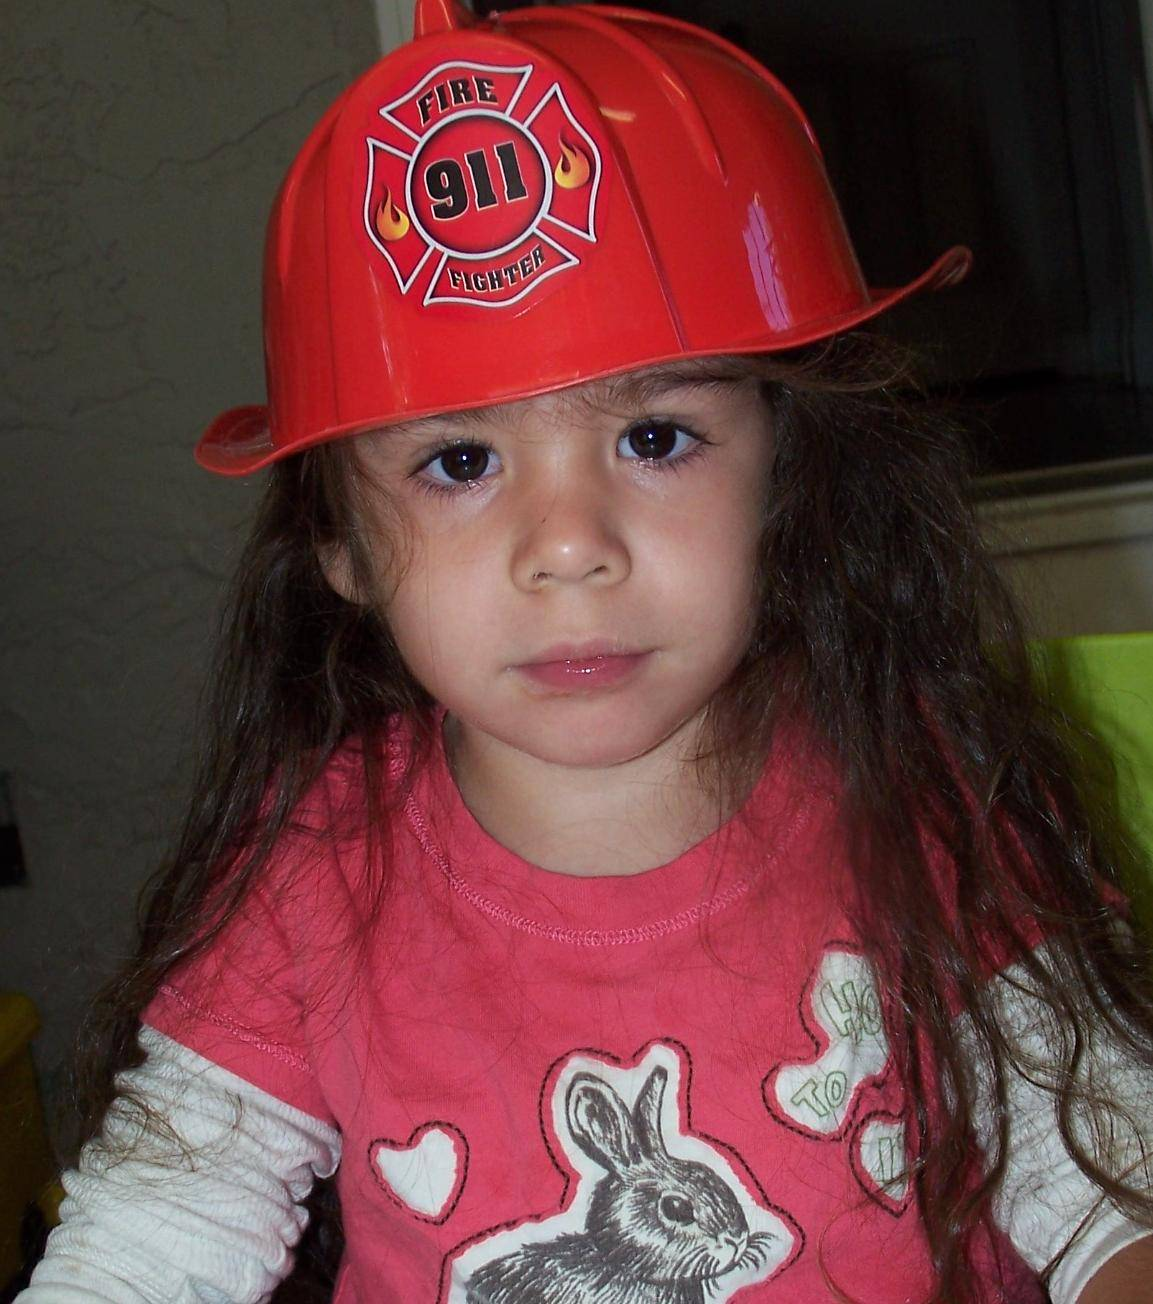 Today we learned about fire safety